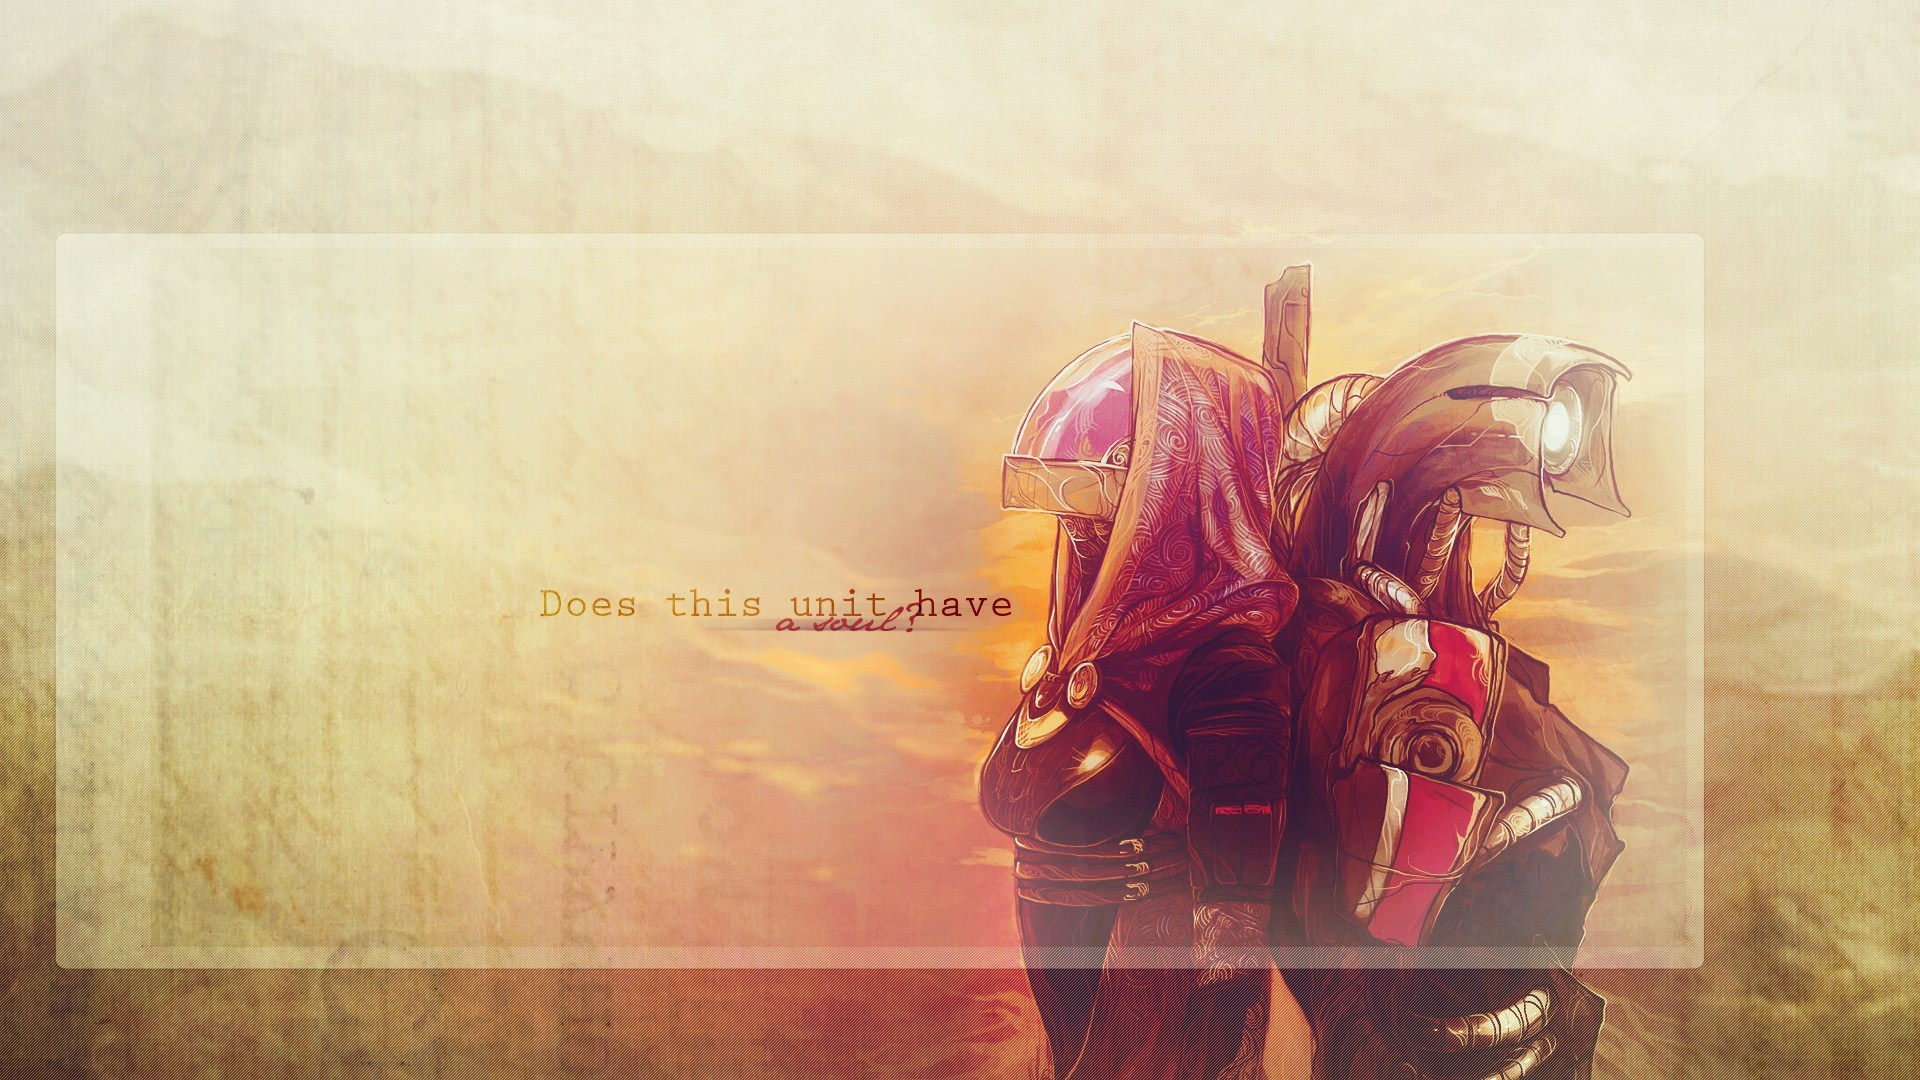 Mass Effect Tali Zorah Legion Video Game Artwork Wallpaper